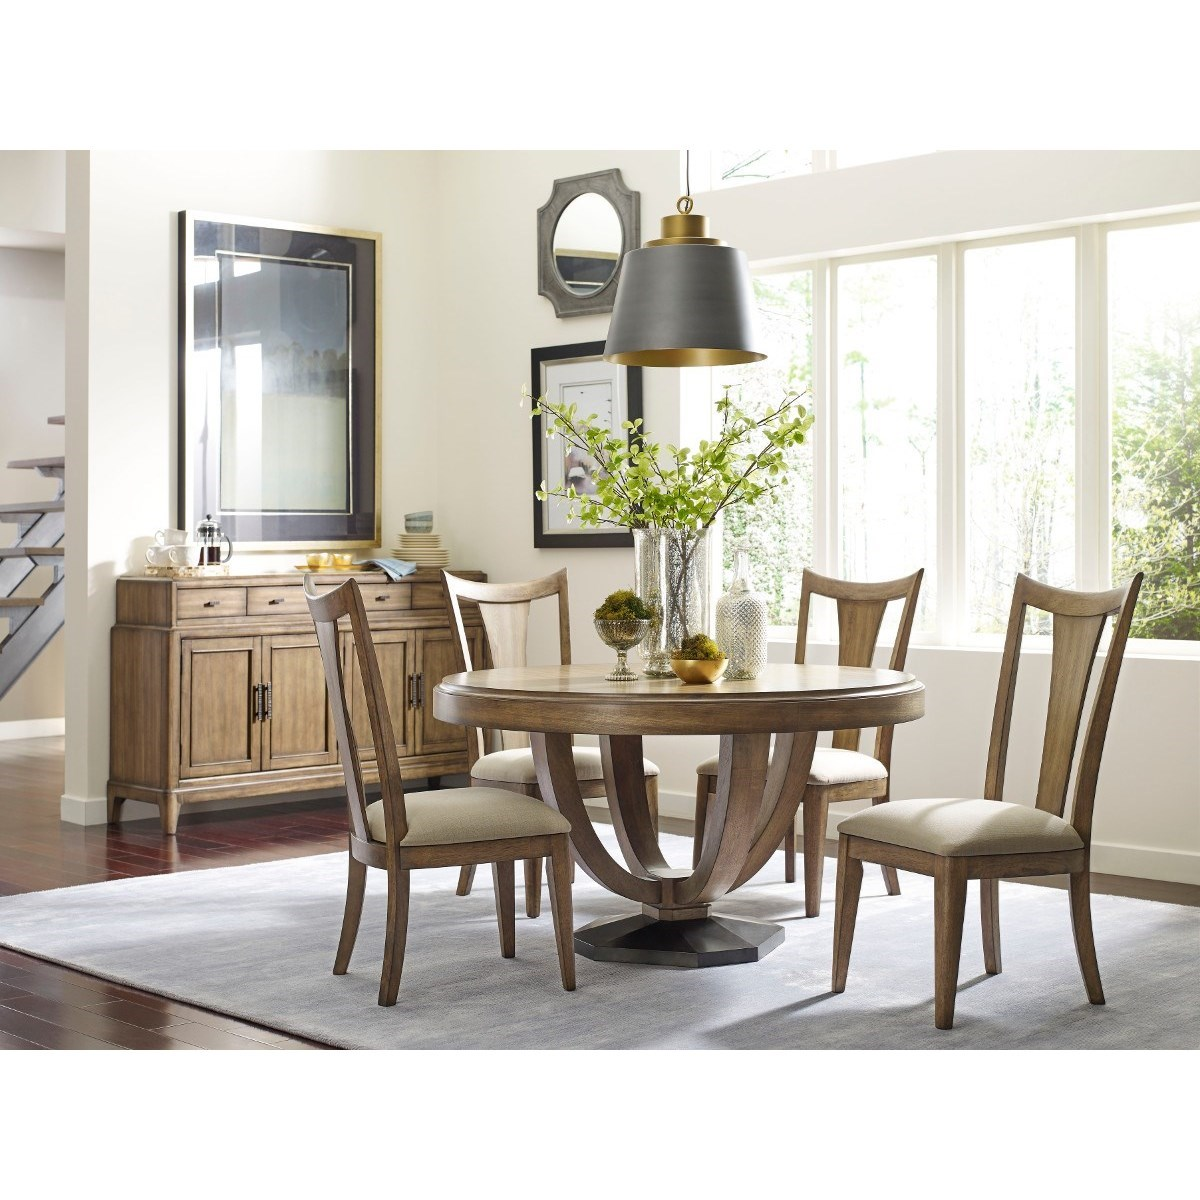 American drew evoke casual dining room group wayside for Casual dining furniture